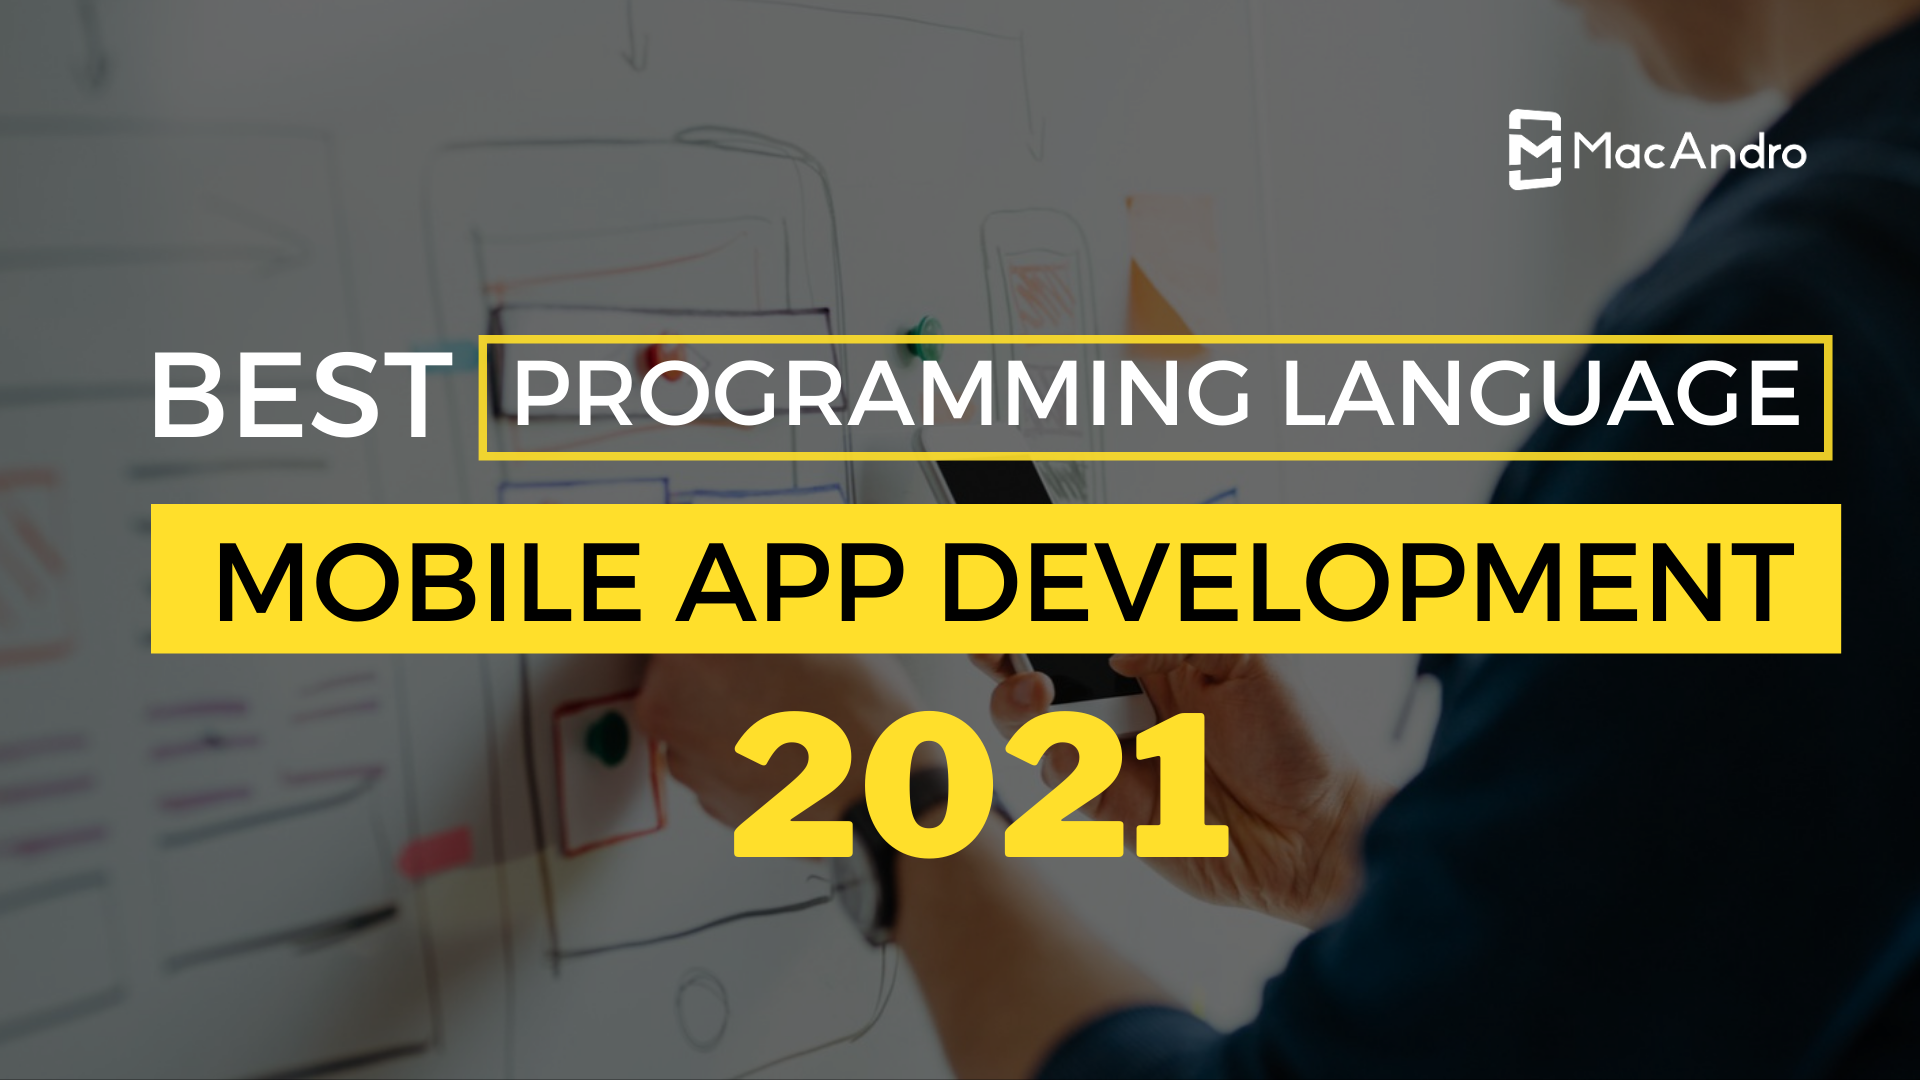 Best Programming Languages for Mobile App Development in 2021